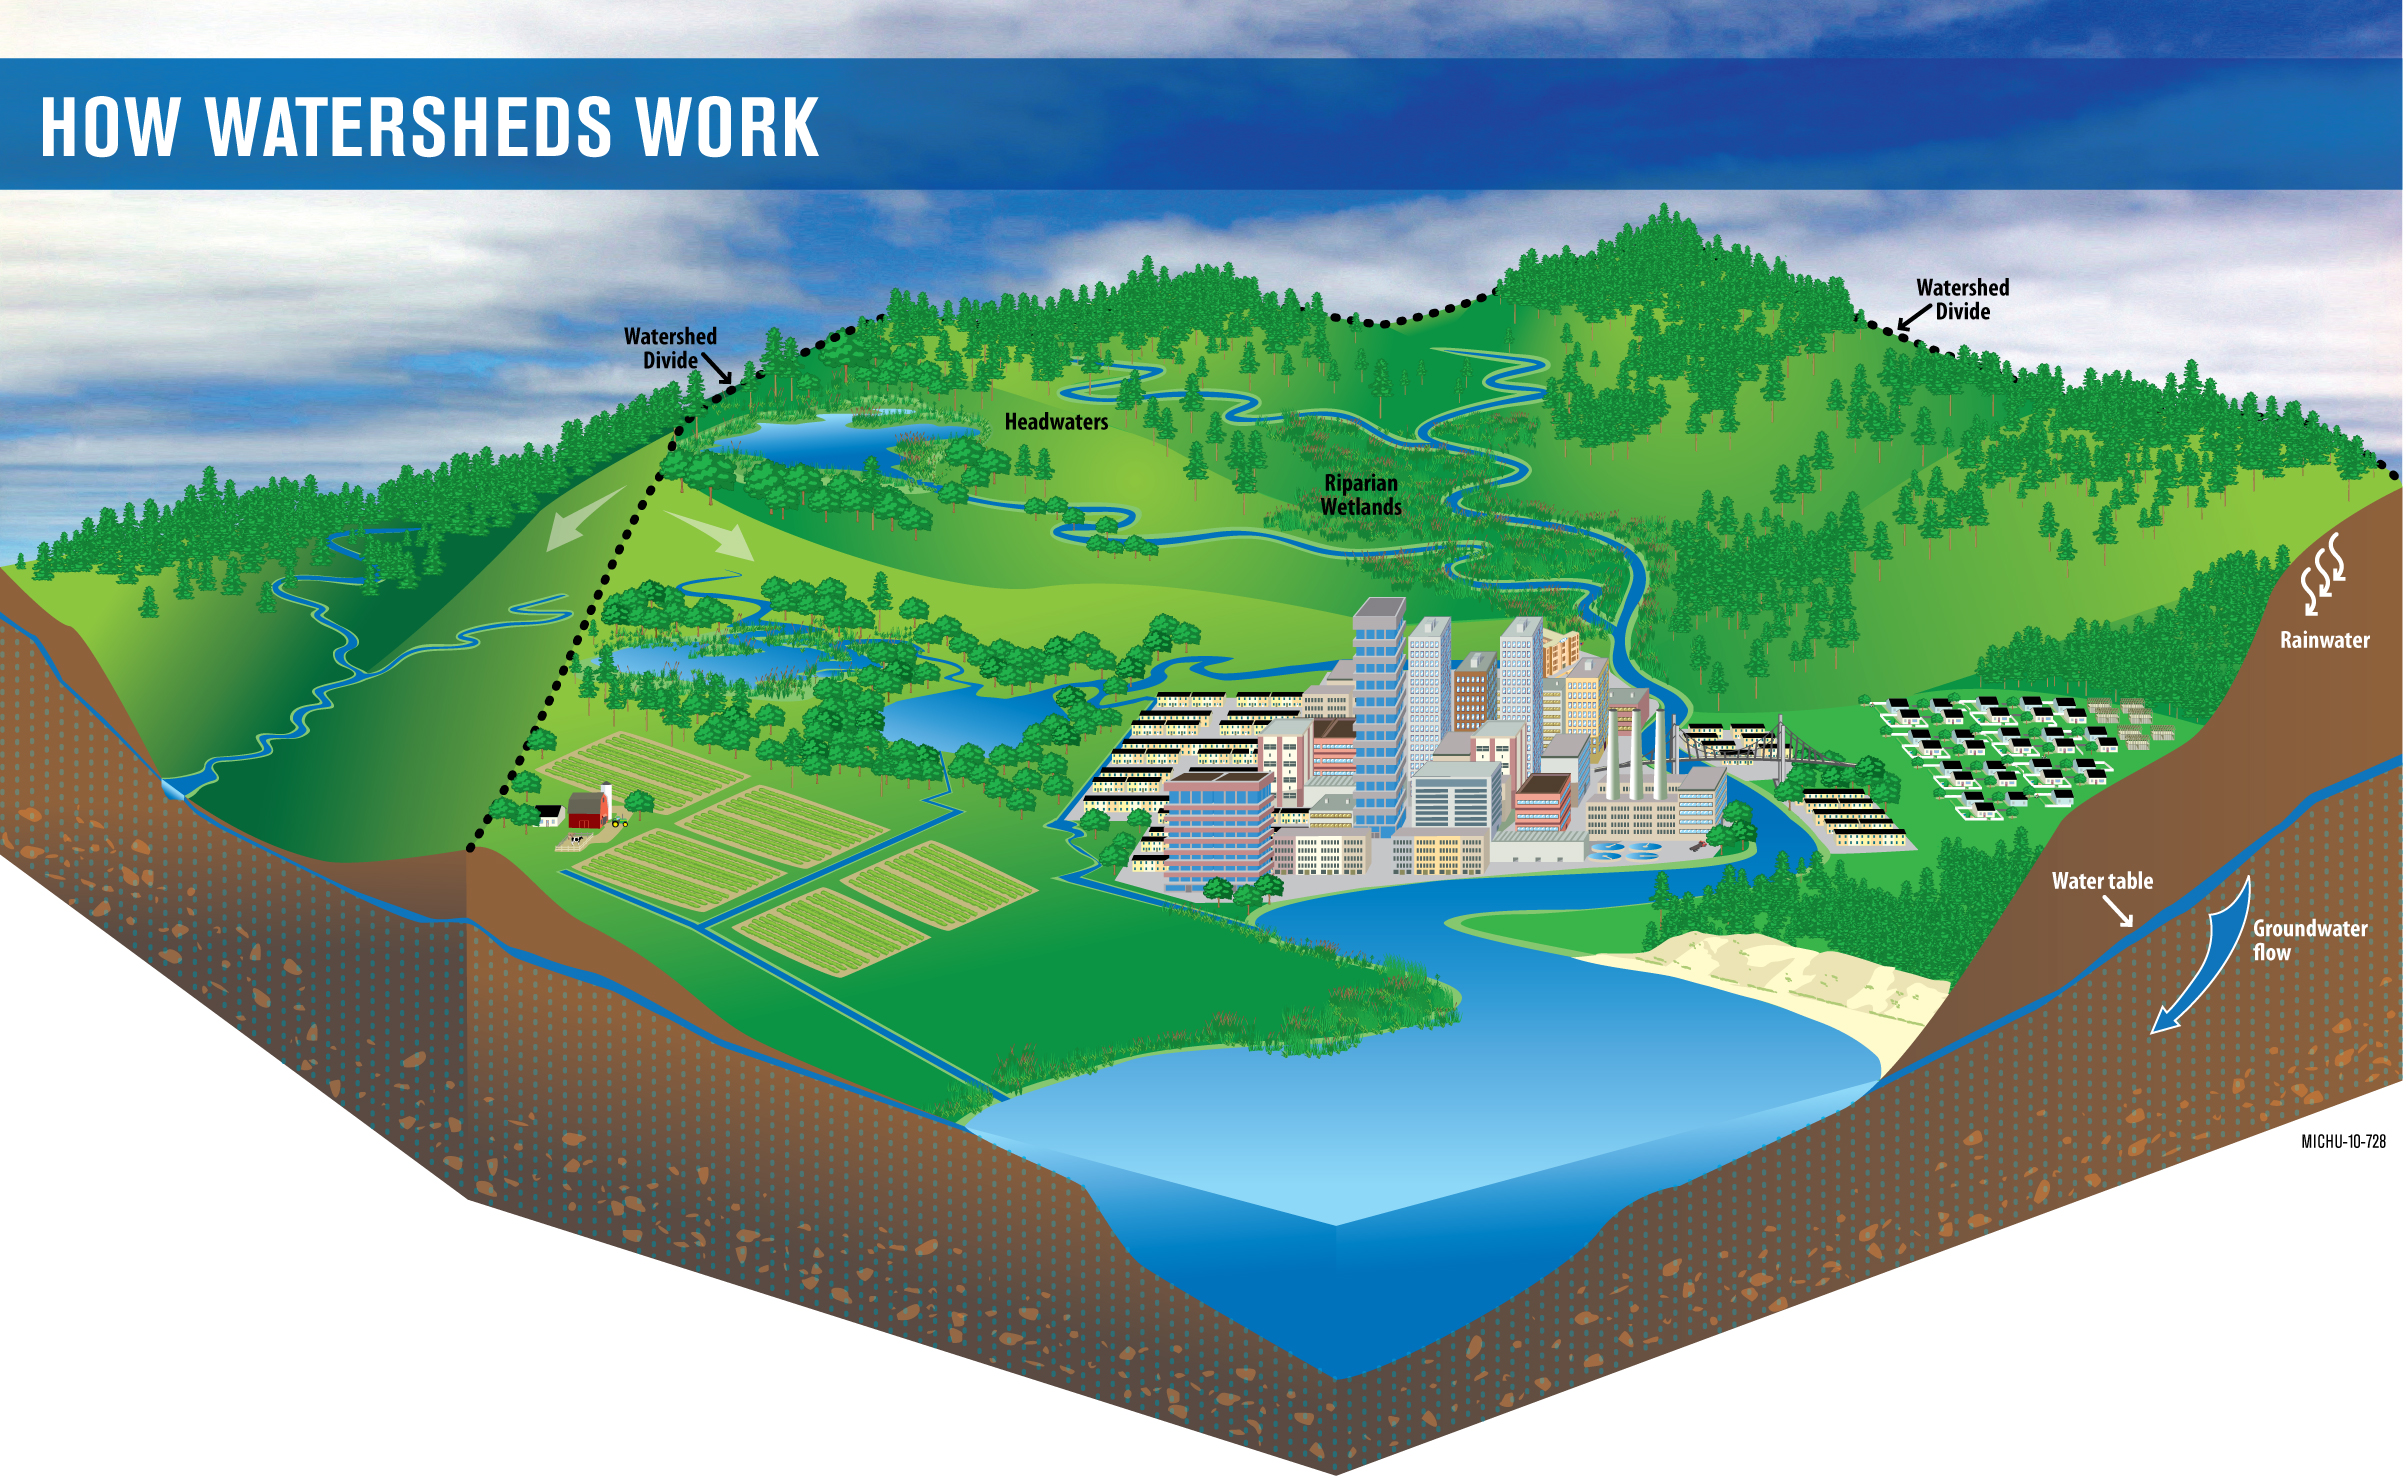 How Watersheds Work: Everything on the land ends up in the water. Graphic by Michigan Sea Grant.